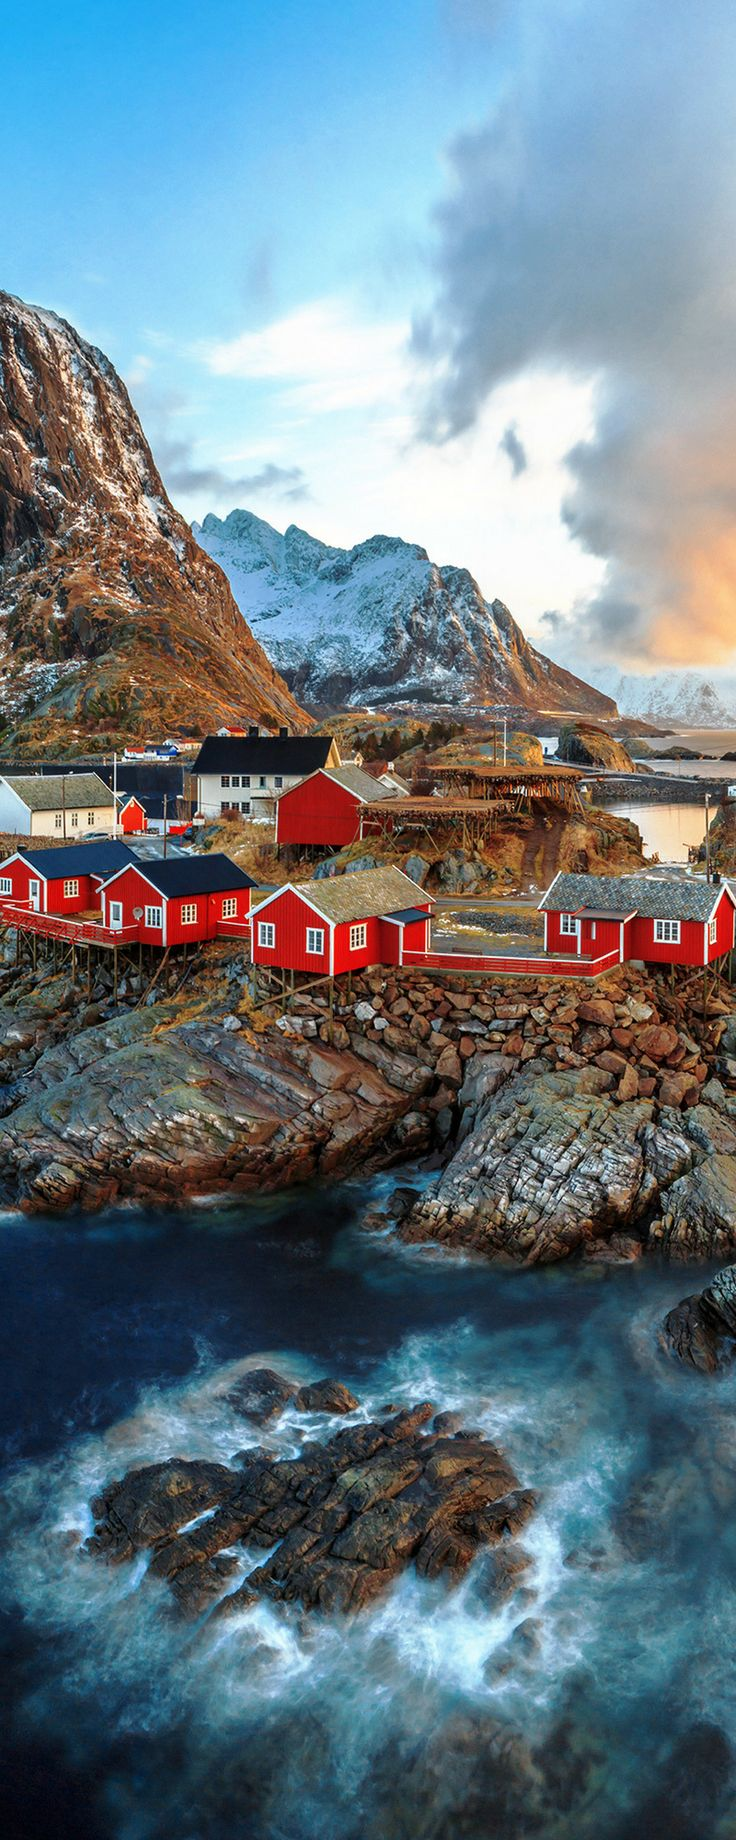 Reine, Lofoten Islands, Norway.  Whether you travel to Norway in the summer or winter you are sure to have an amazing time!  Enjoy 20 incredible photos of Norway!  Fjords   Alesund   Flam     Bergen   Nature   Waterfalls